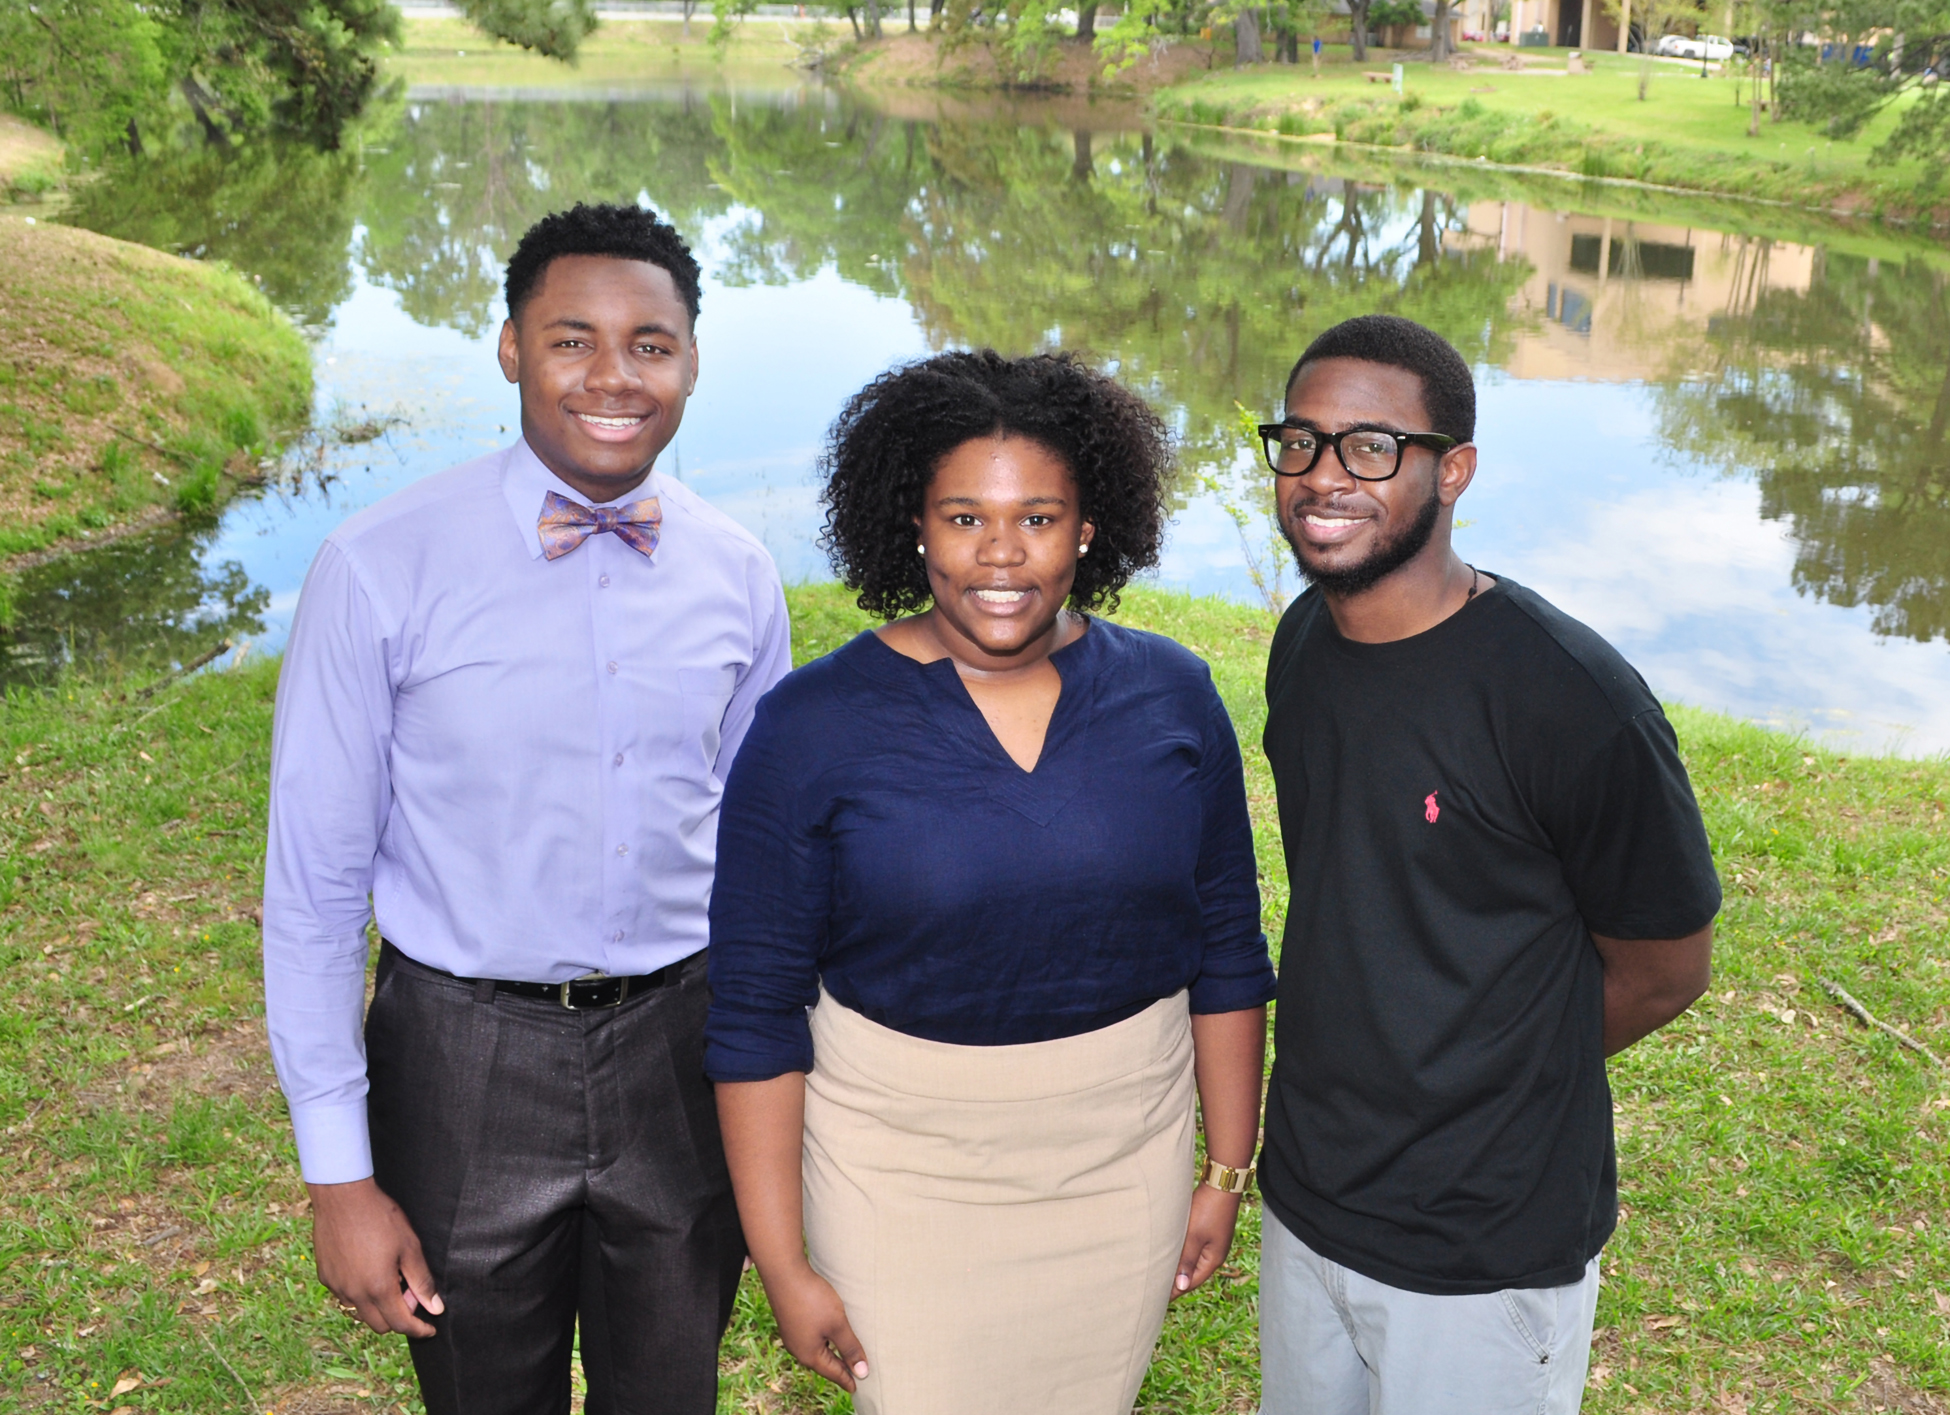 SUBR Timbuktu Academy and the Louis Stokes Louisiana Alliance for Minority Participation (LS-LAMP) Program scholars (pictured left –right) Oscar L. McClain, Jonalyn A. Fair, and André J. Spears, have been selected to participate in the Summer 2016 Minority Serving Institutions Partnership Program at Los Alamos National Laboratory in Los Alamos, New Mexico.